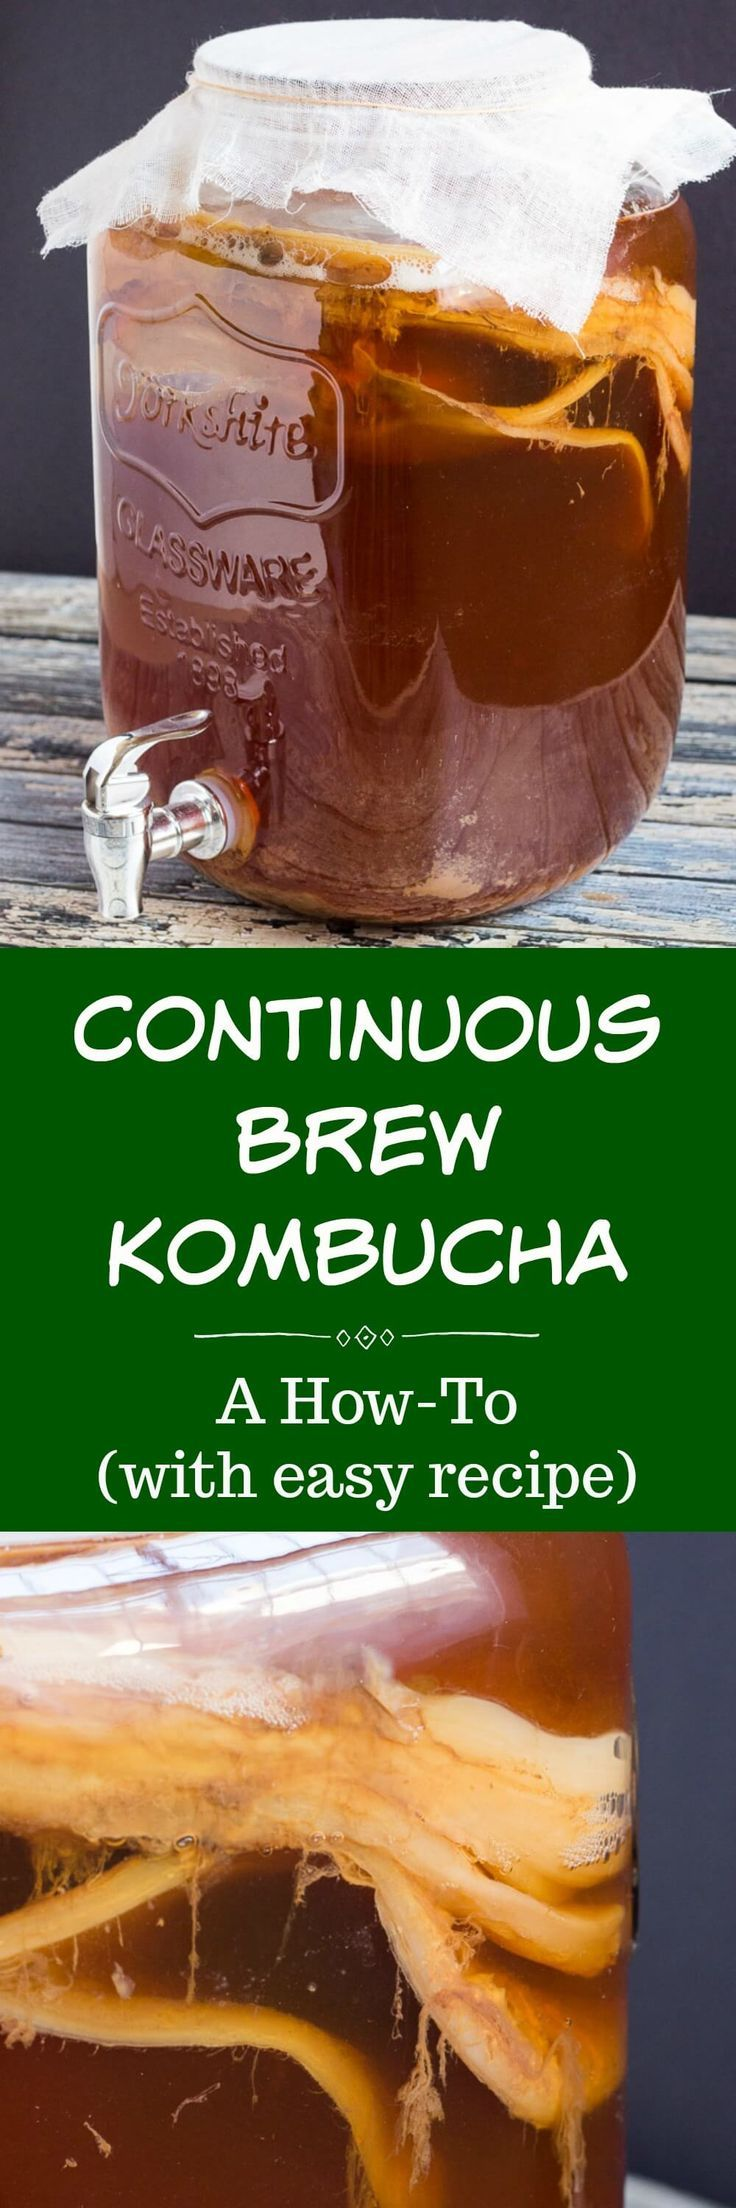 The Continuous Brew Kombucha Method is an easy way to ensure you always have a steady supply of this refreshing, probiotic-rich drink.  All you need is a SCOBY and some sweetened black tea, and you will be well on your way to greater gut health. #kombucha #kombuchatea #thecookspyjamas #howtomake #recipe #benefits #continuousbrew